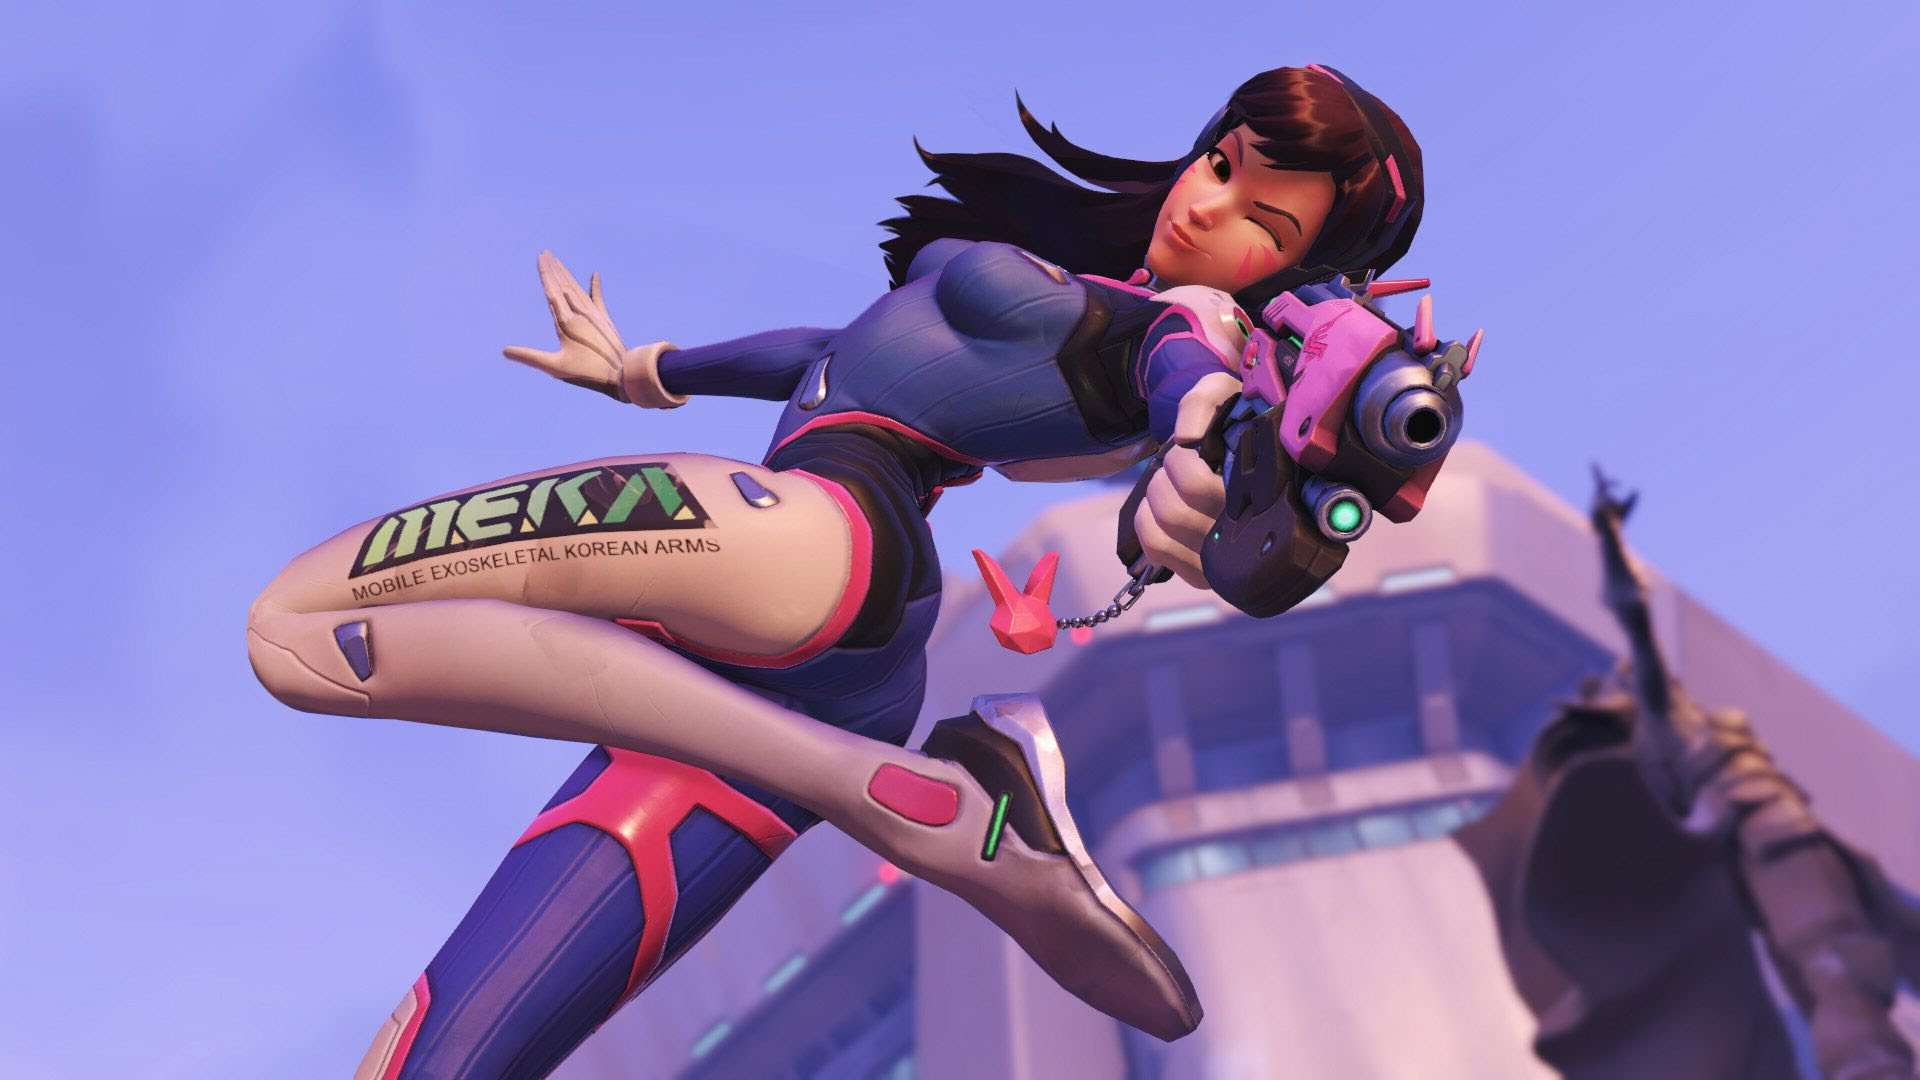 maxresdefault 2 3 Blizzard Planning To Nerf Key Overwatch Character